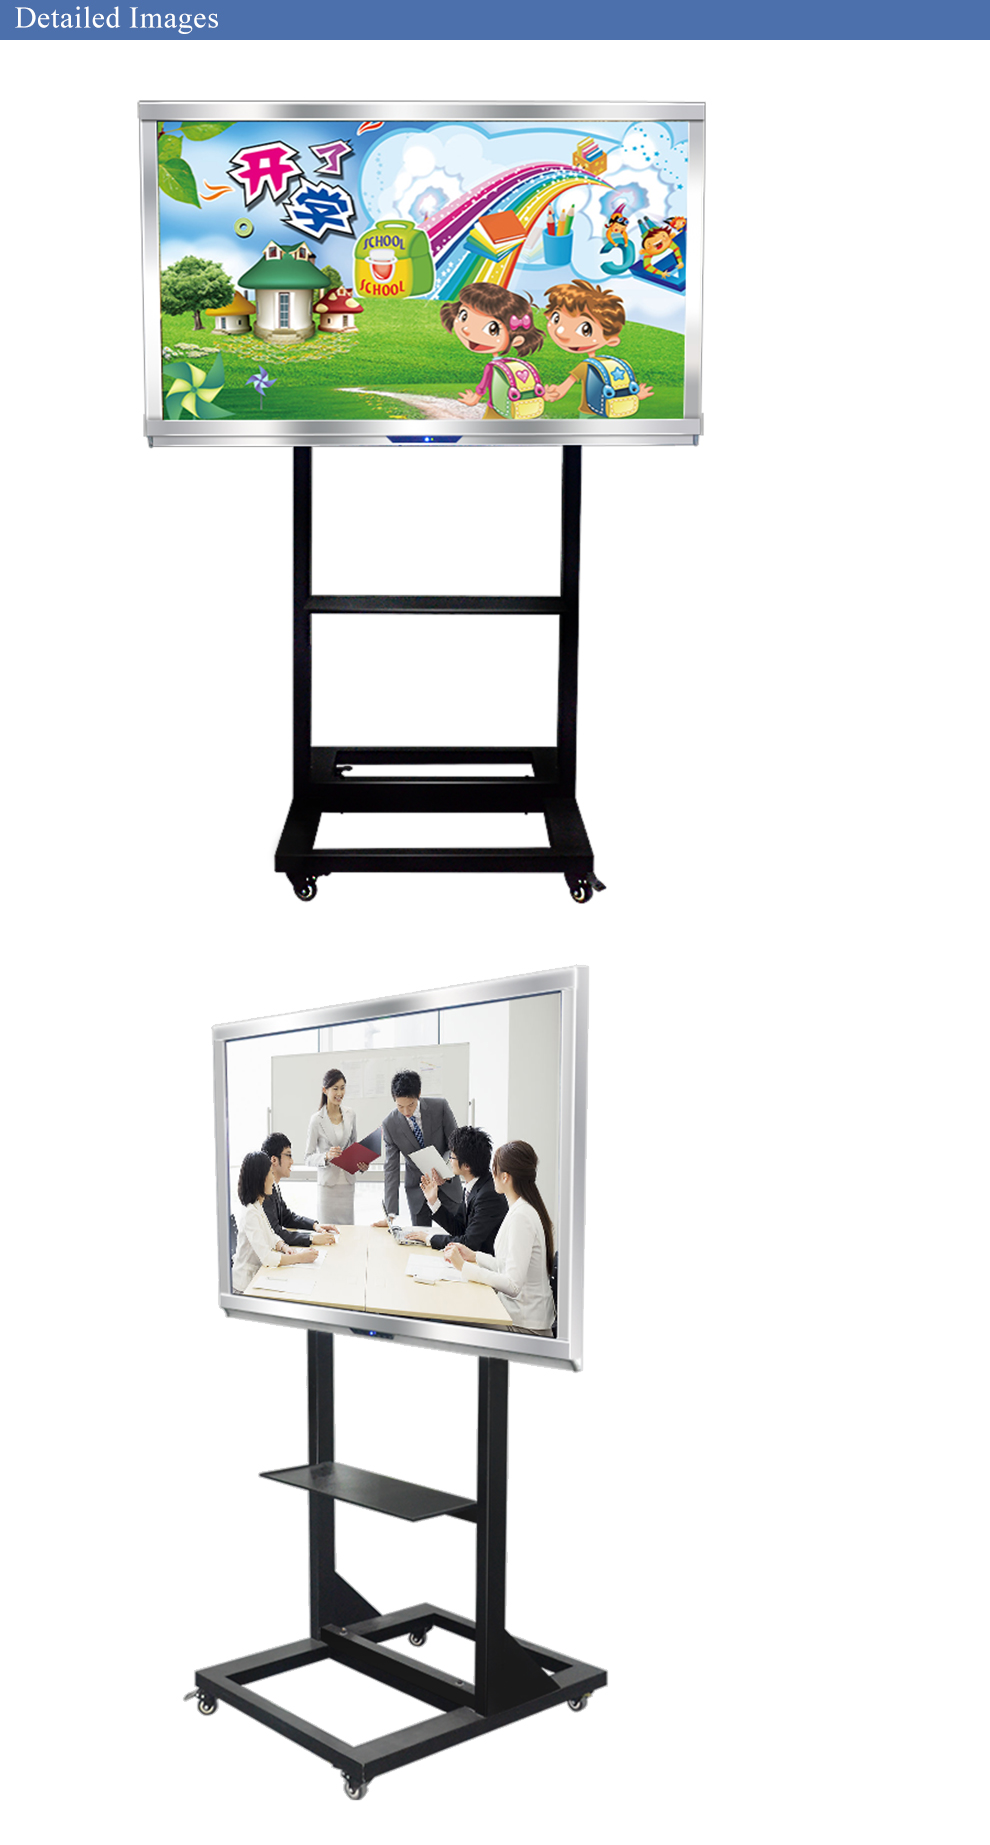 "China Factory 65"" Multi-touch Electronic Interactive Whiteboard for Educational Use"